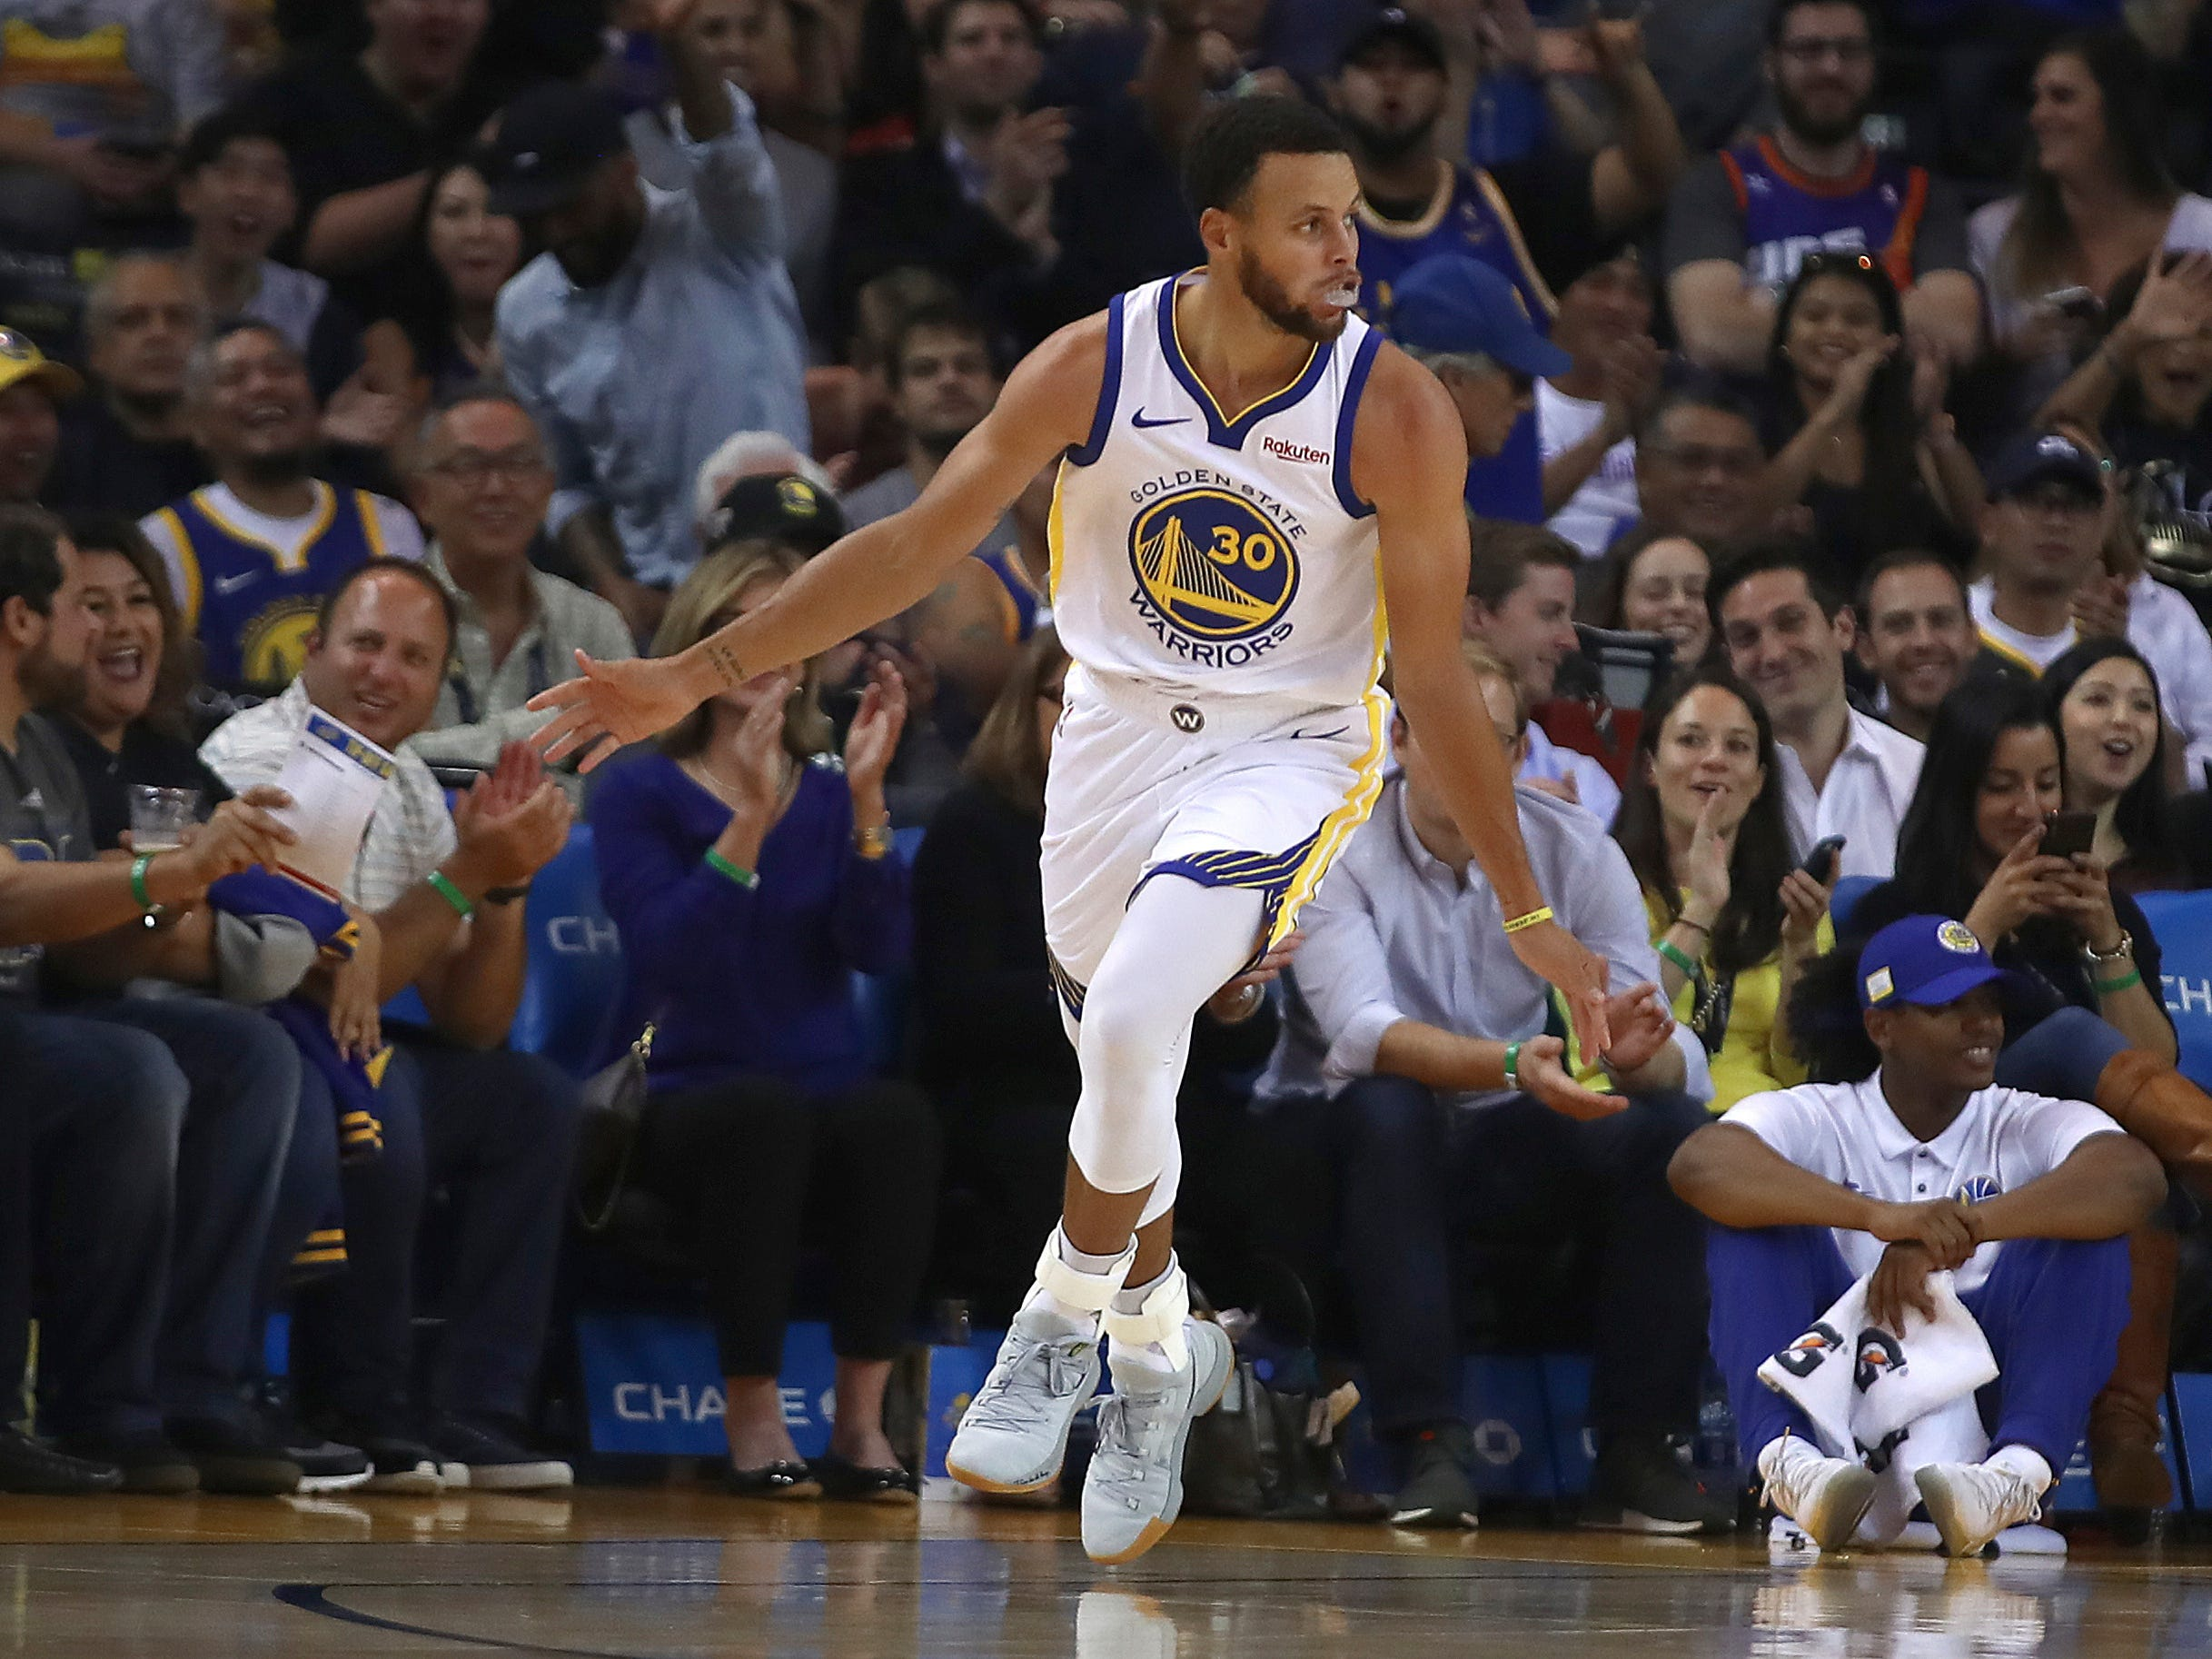 Golden State Warriors' Stephen Curry celebrates after scoring against the Phoenix Suns during the first half of a preseason NBA basketball game Monday, Oct. 8, 2018, in Oakland, Calif.